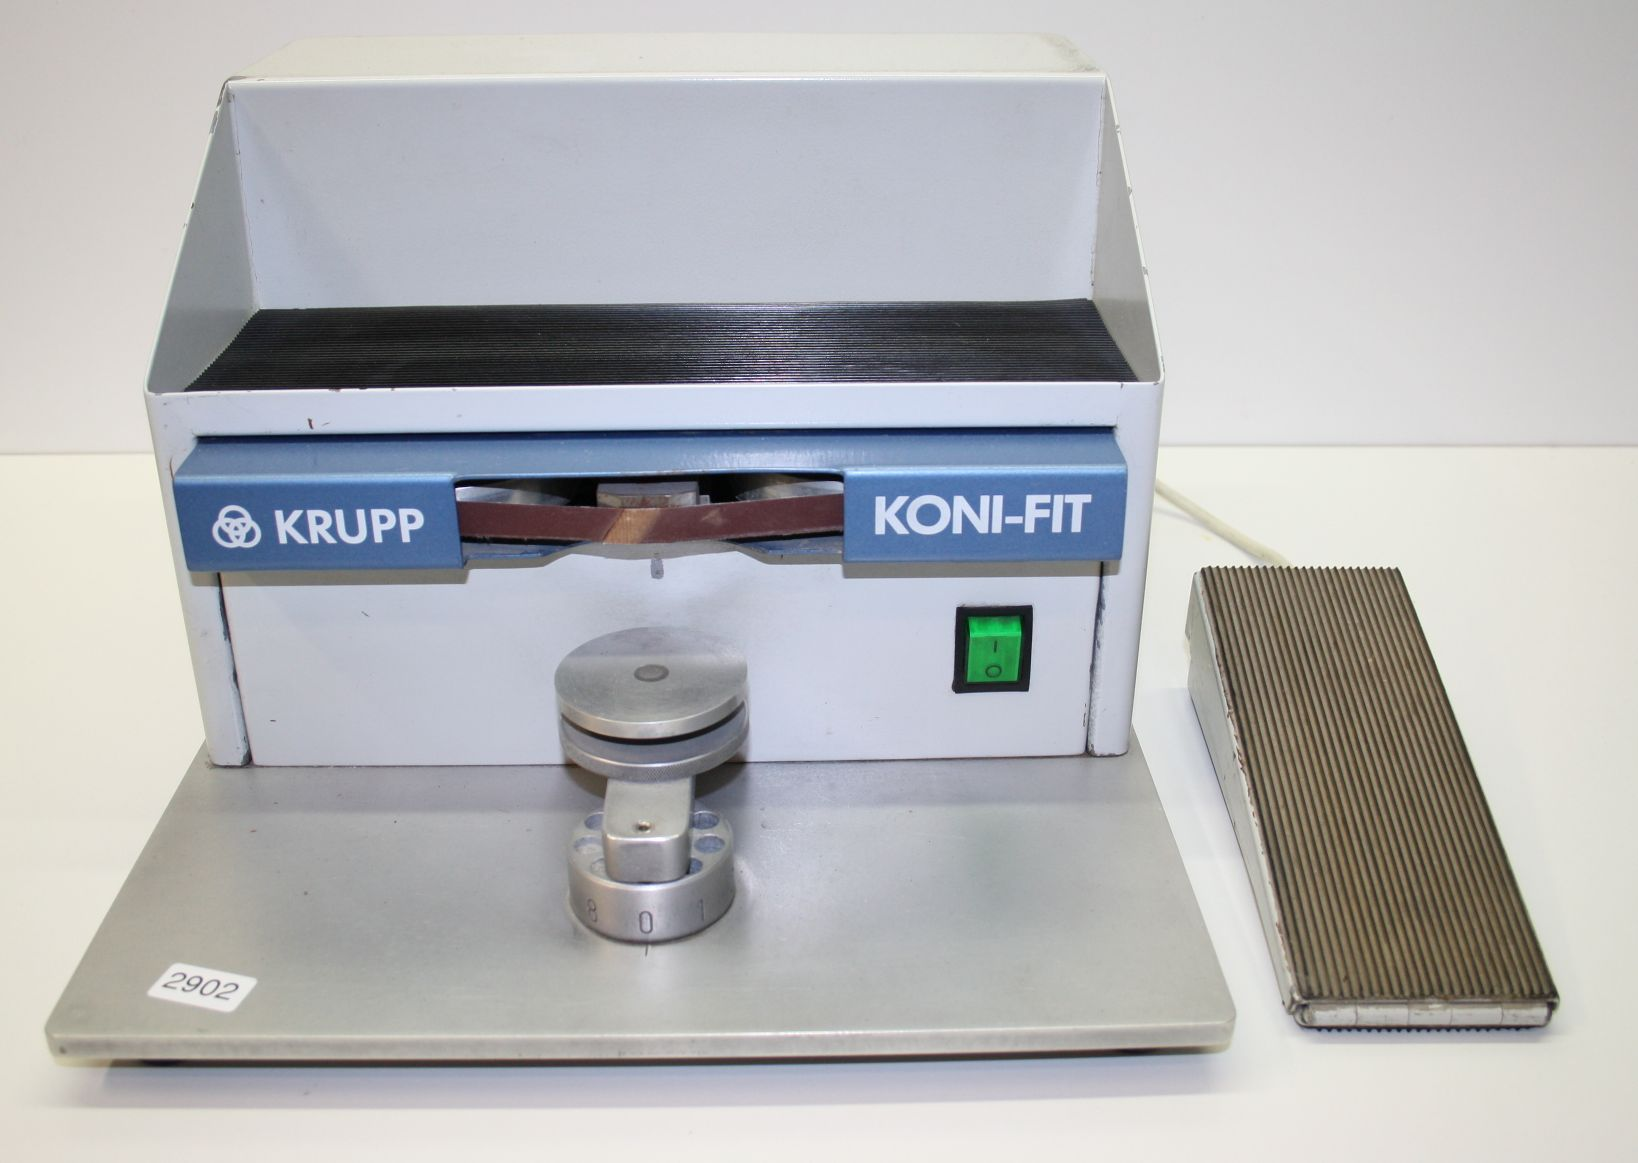 KRUPP-DENTAL-Bandschleifer-KONI-FIT-2902